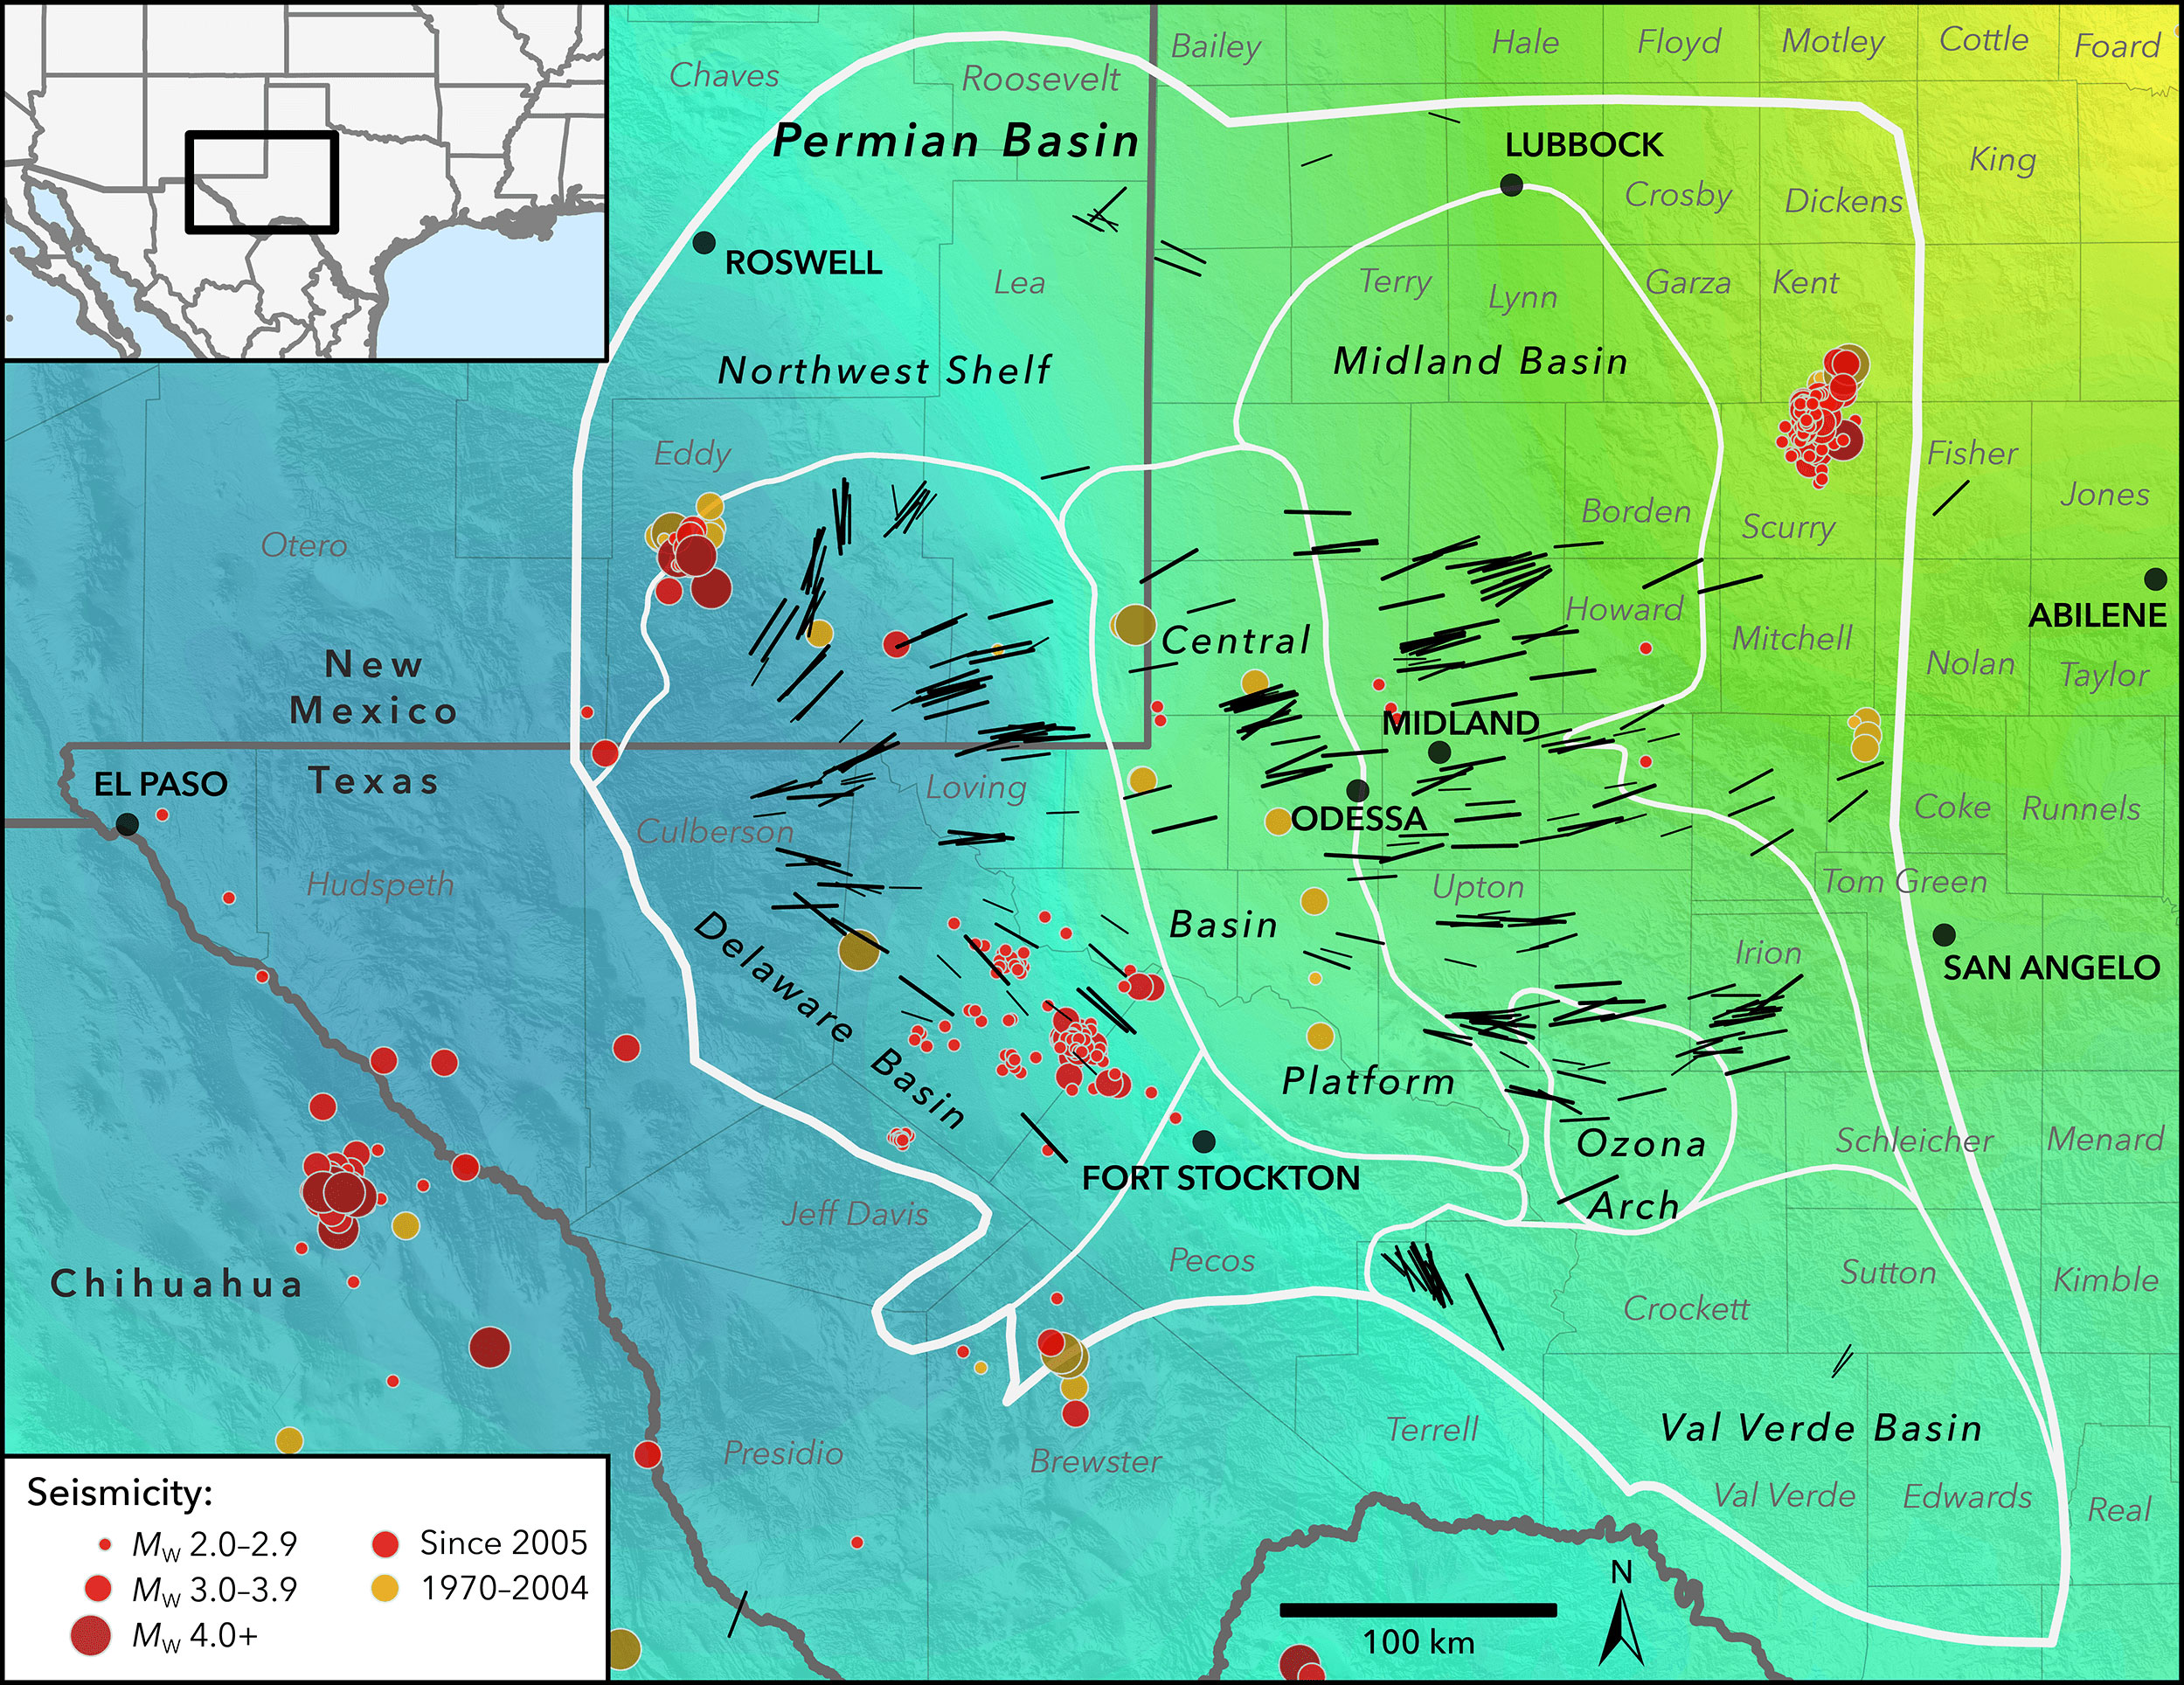 Seismic stress map developed by Stanford researchers